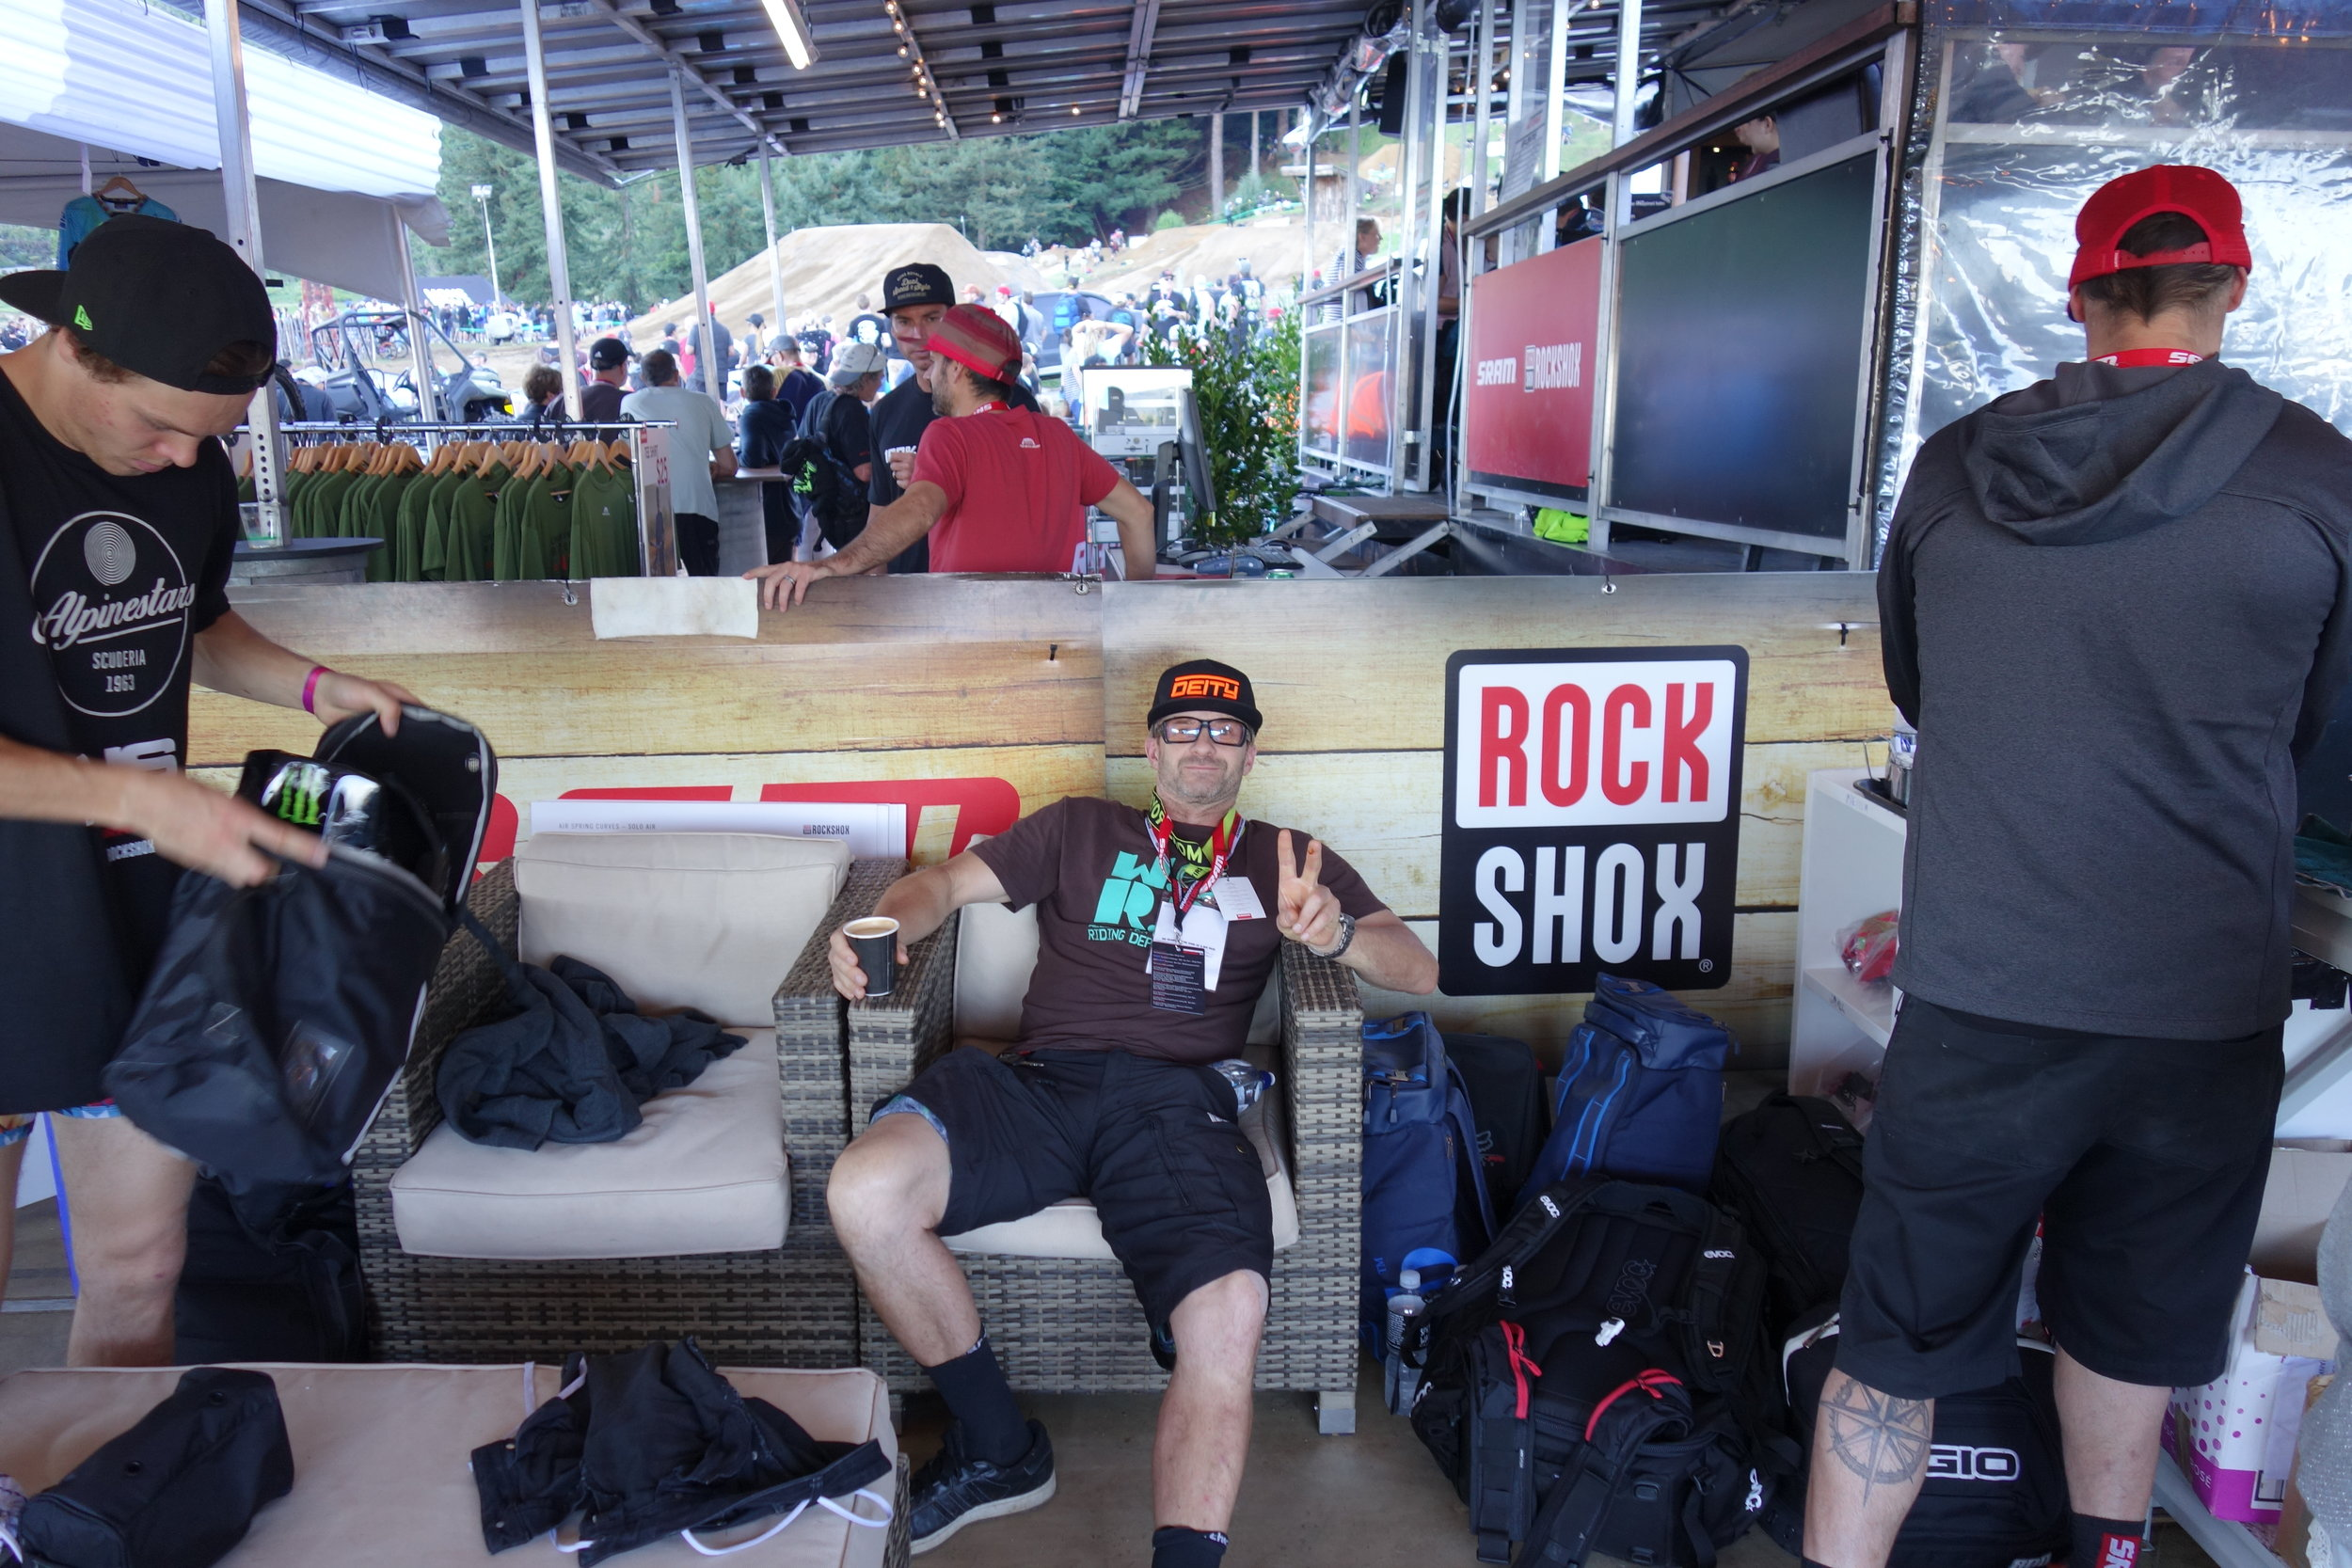 I'm exhausted from all this work already so I head to the Sram tent and take a break in Brandon Semenuks spare seat hoping he'll pop over for a chat.....  photo: Wombat.